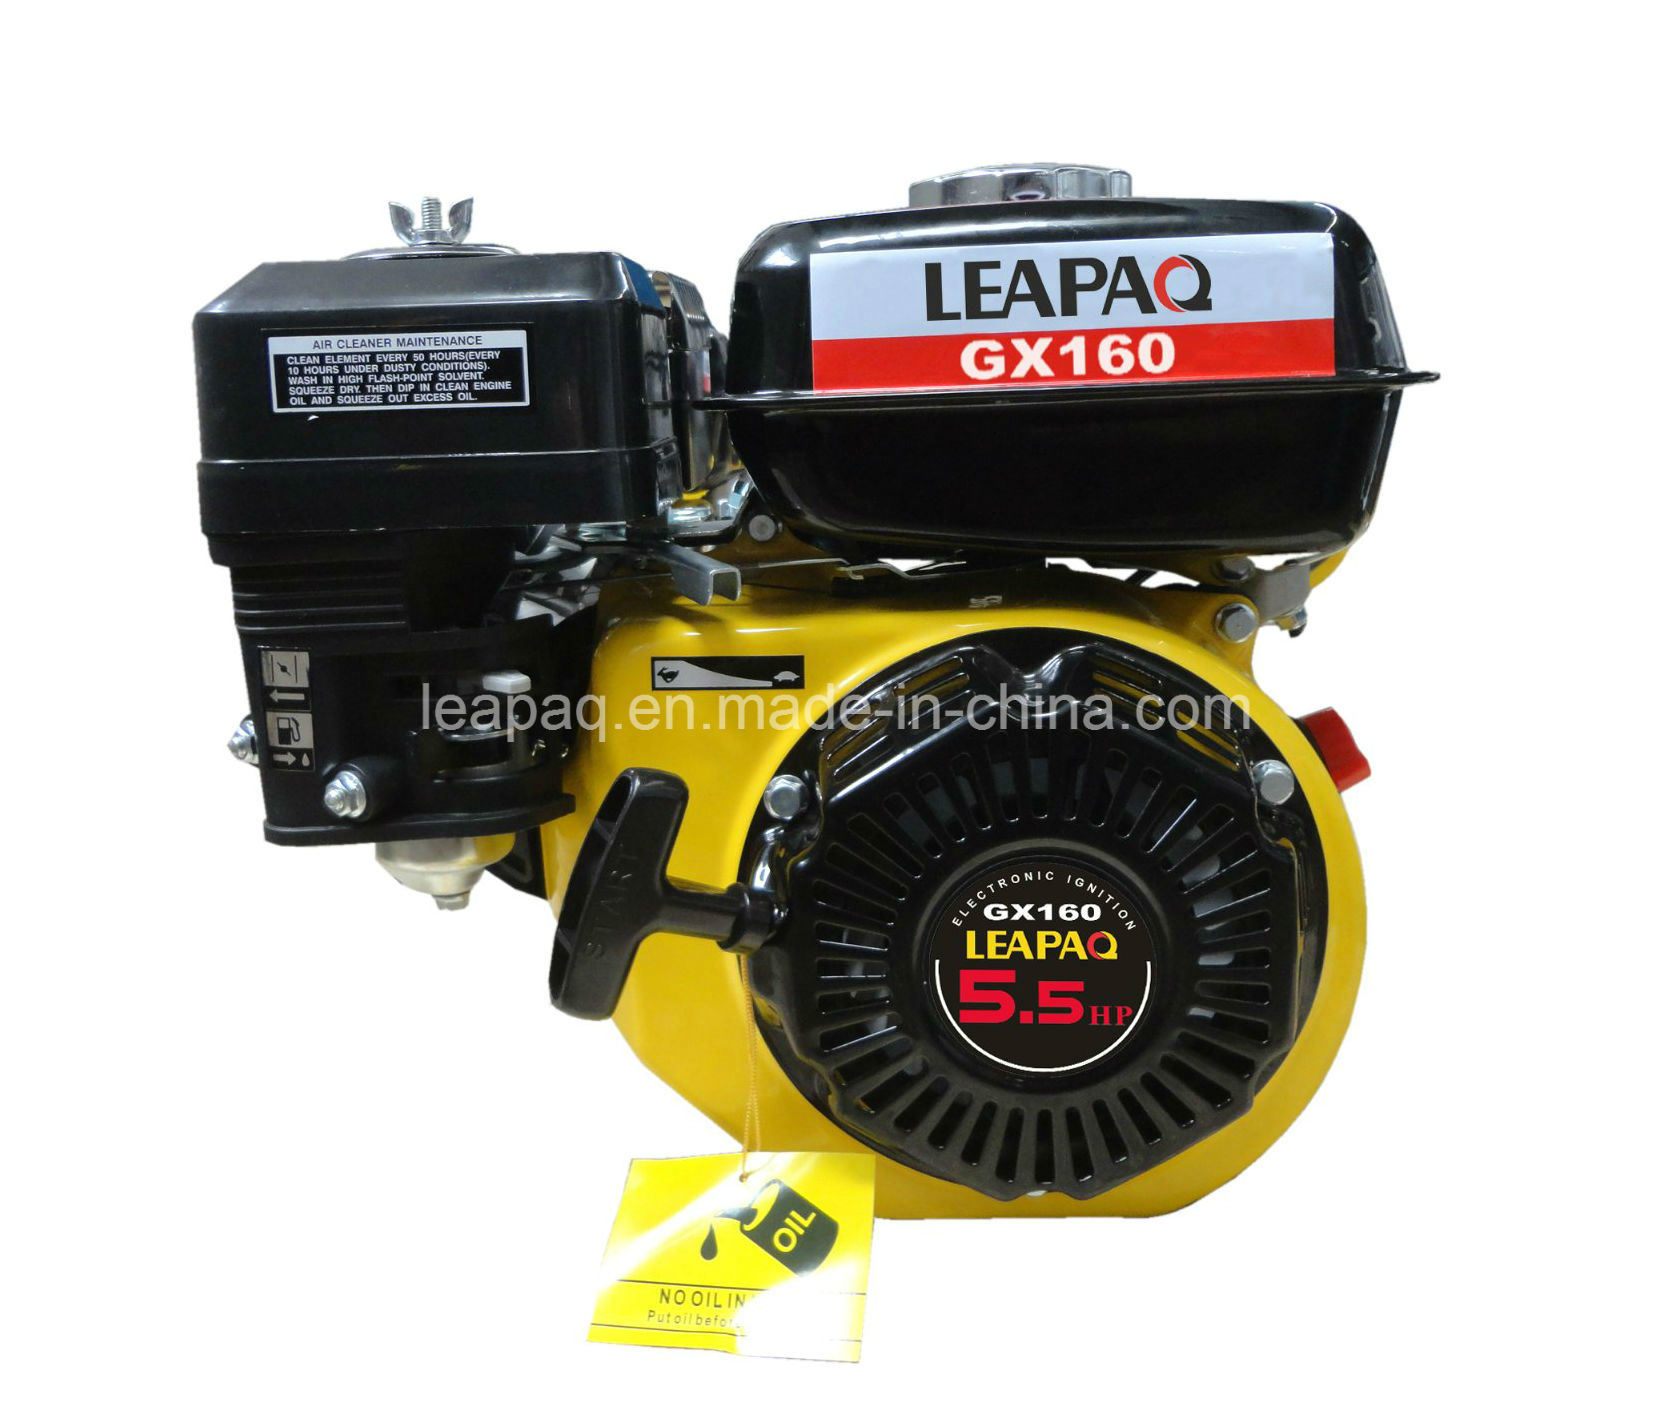 5.5HP 4-Stroke Single Cylinder Ohv Gasoline Engine